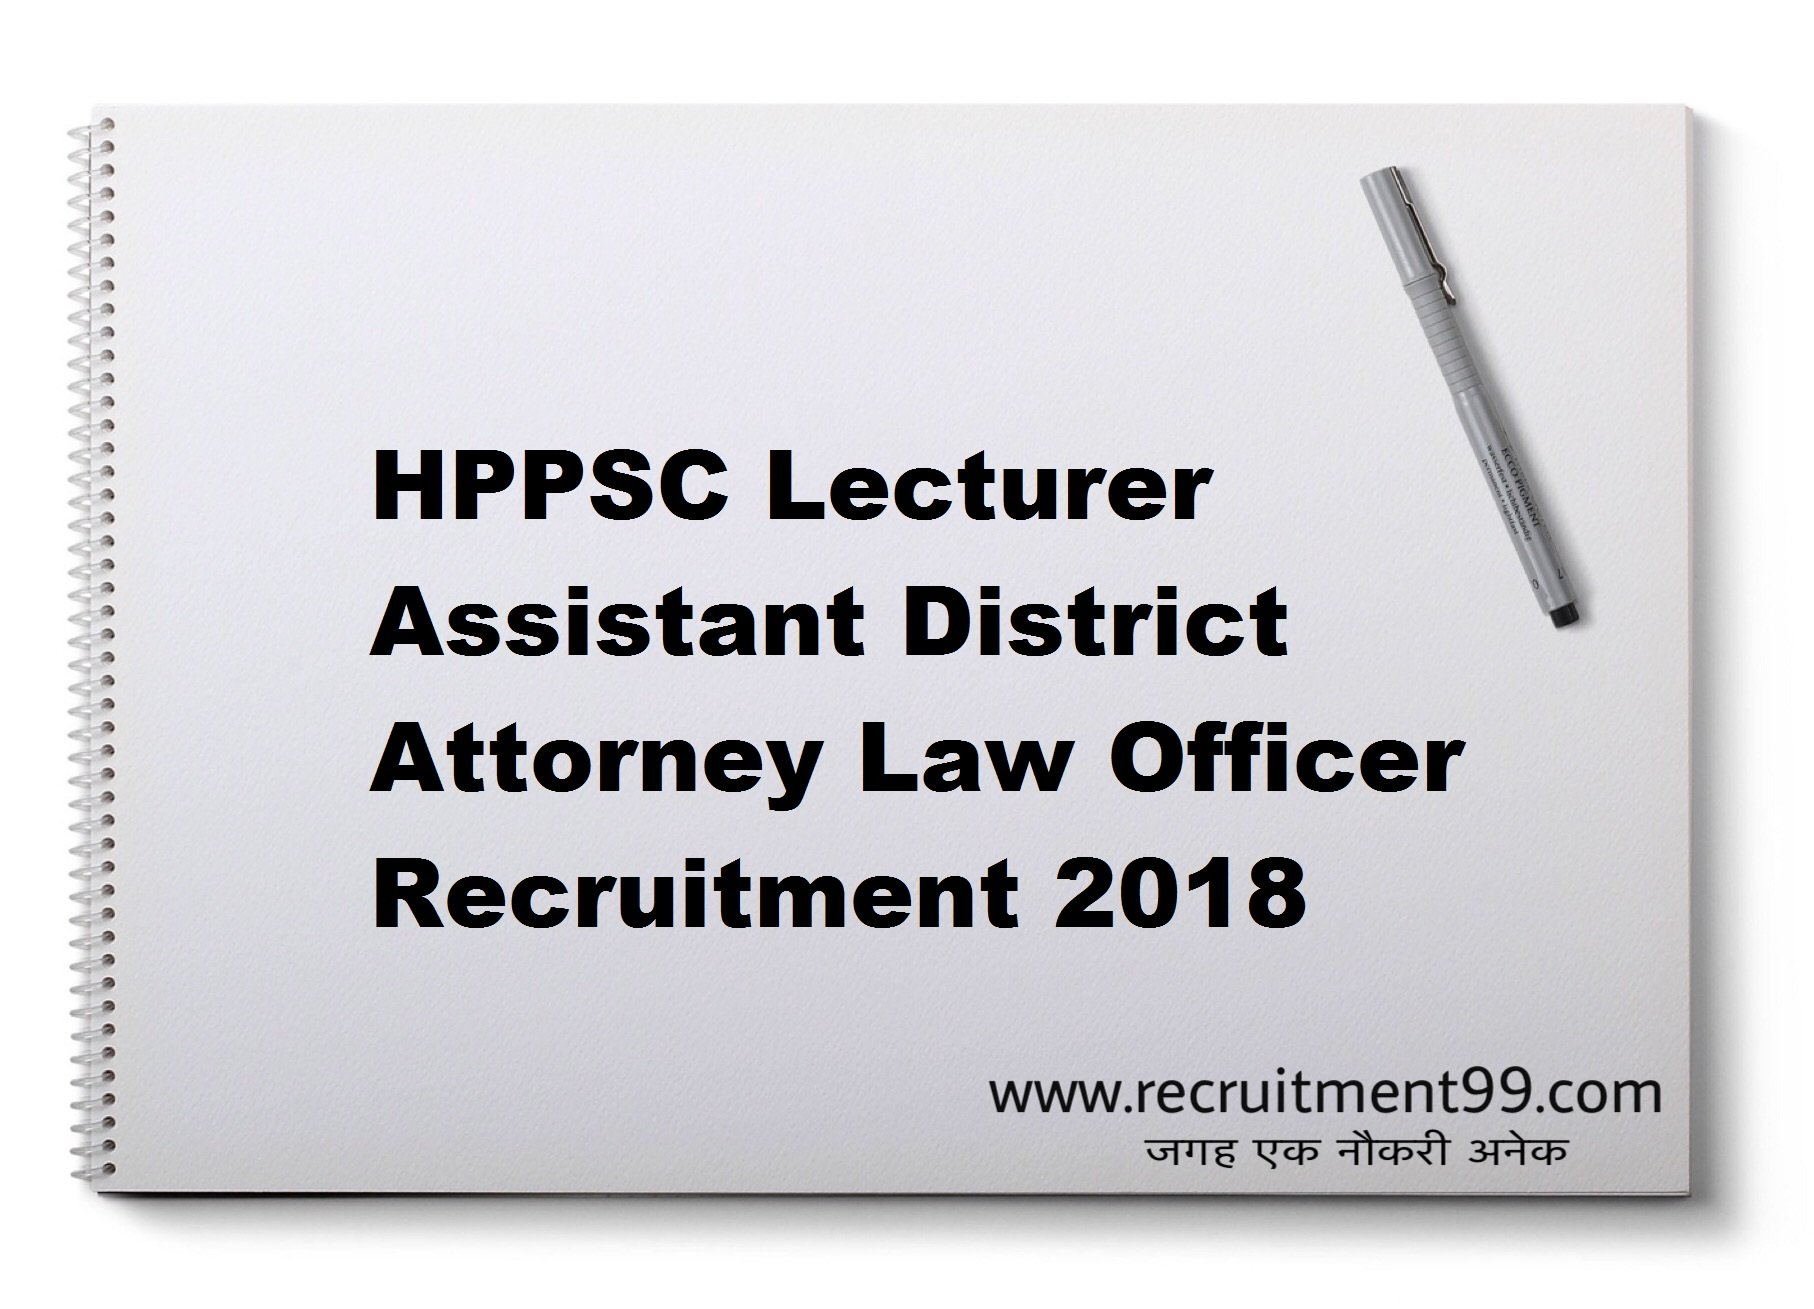 HPPSC Lecturer Assistant District Attorney Recruitment Admit Card Result 2018